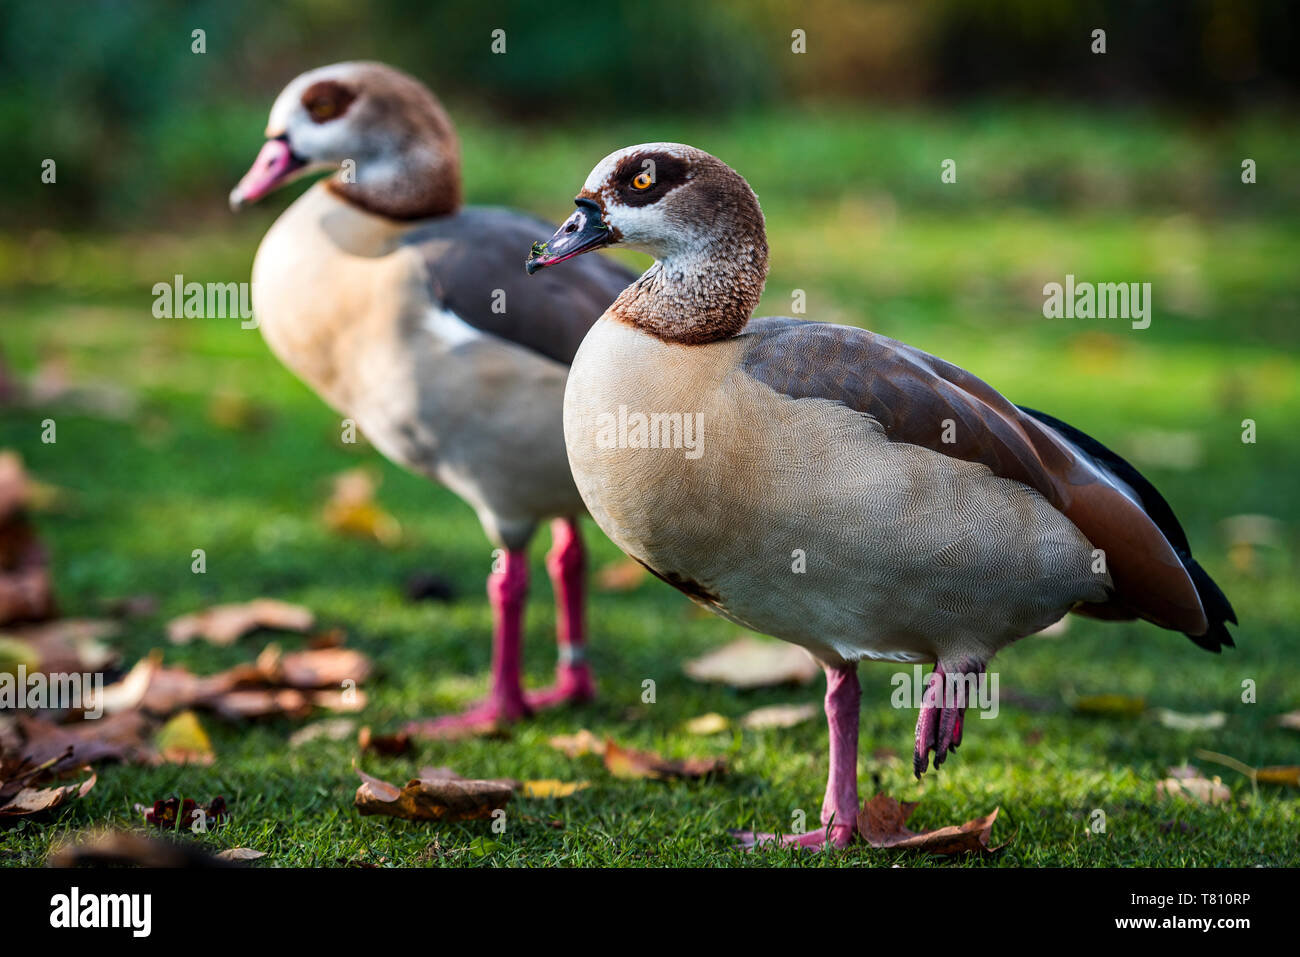 Egyptian Geese in Regents Park, one of the Royal Parks of London, England, United Kingdom, Europe - Stock Image